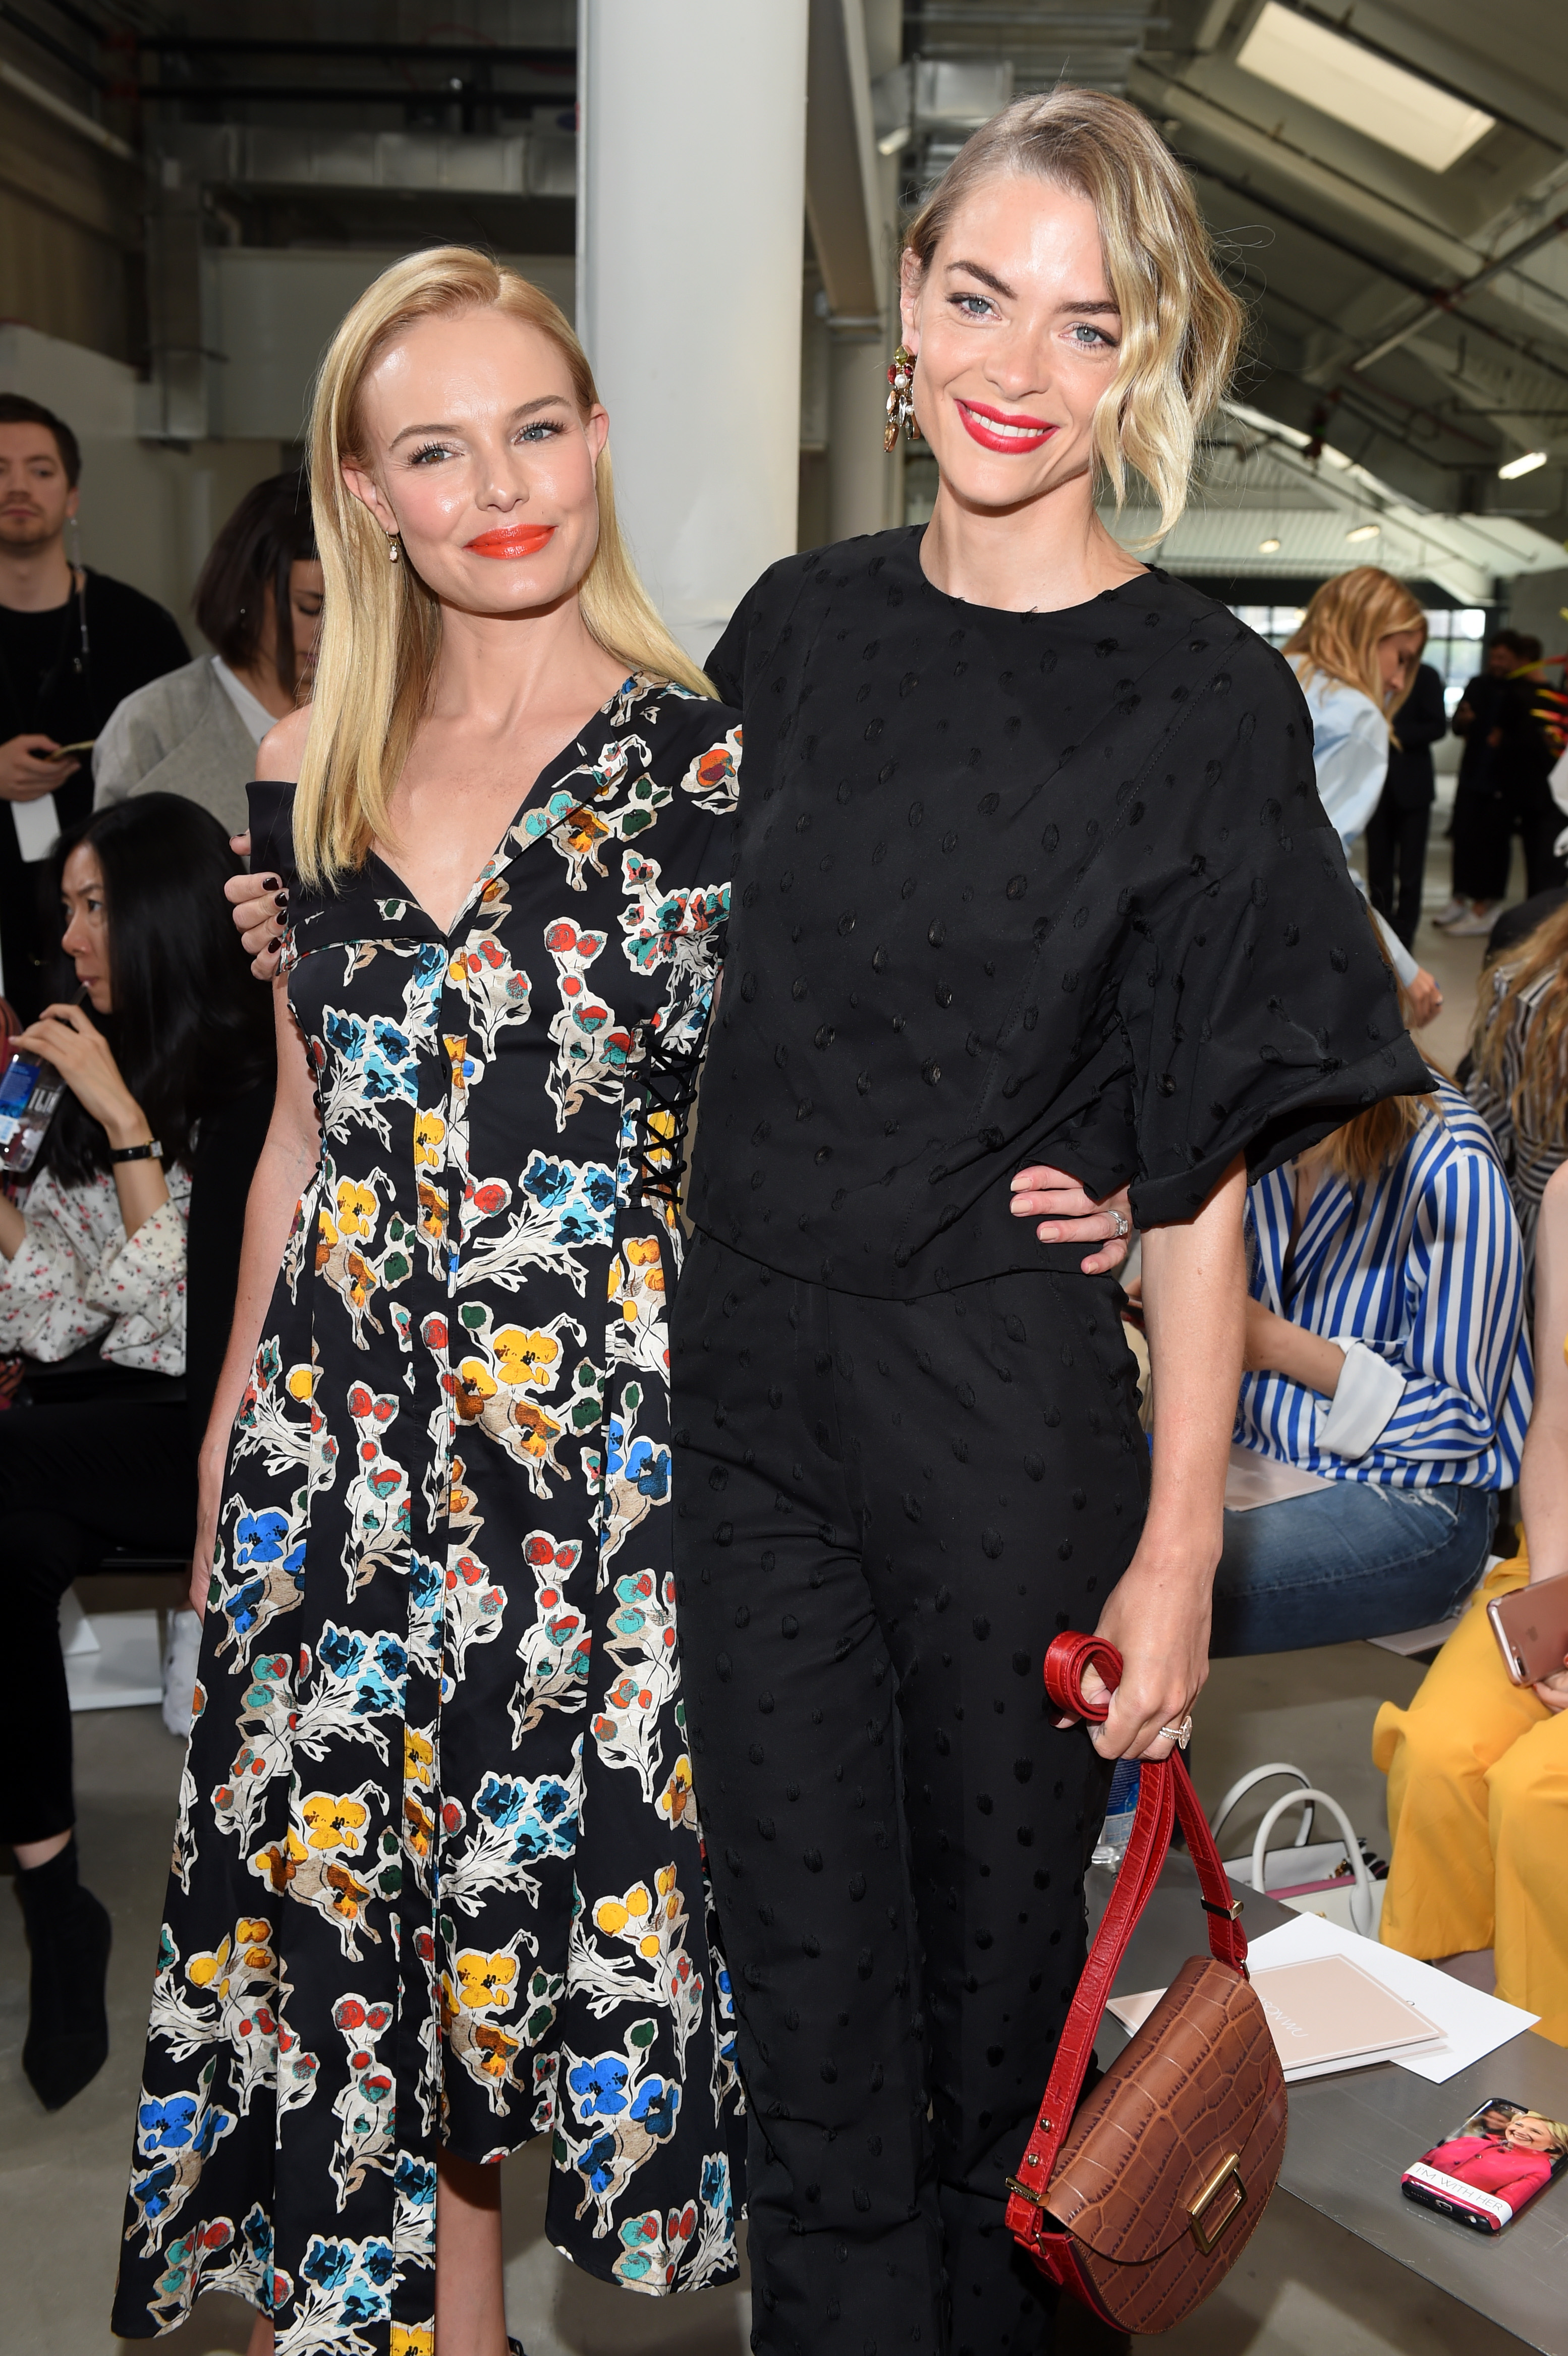 Kate Bosworth and Jaime King in the front rowJason Wu show, Front Row, Spring Summer 2018, New York Fashion Week, USA - 08 Sep 2017